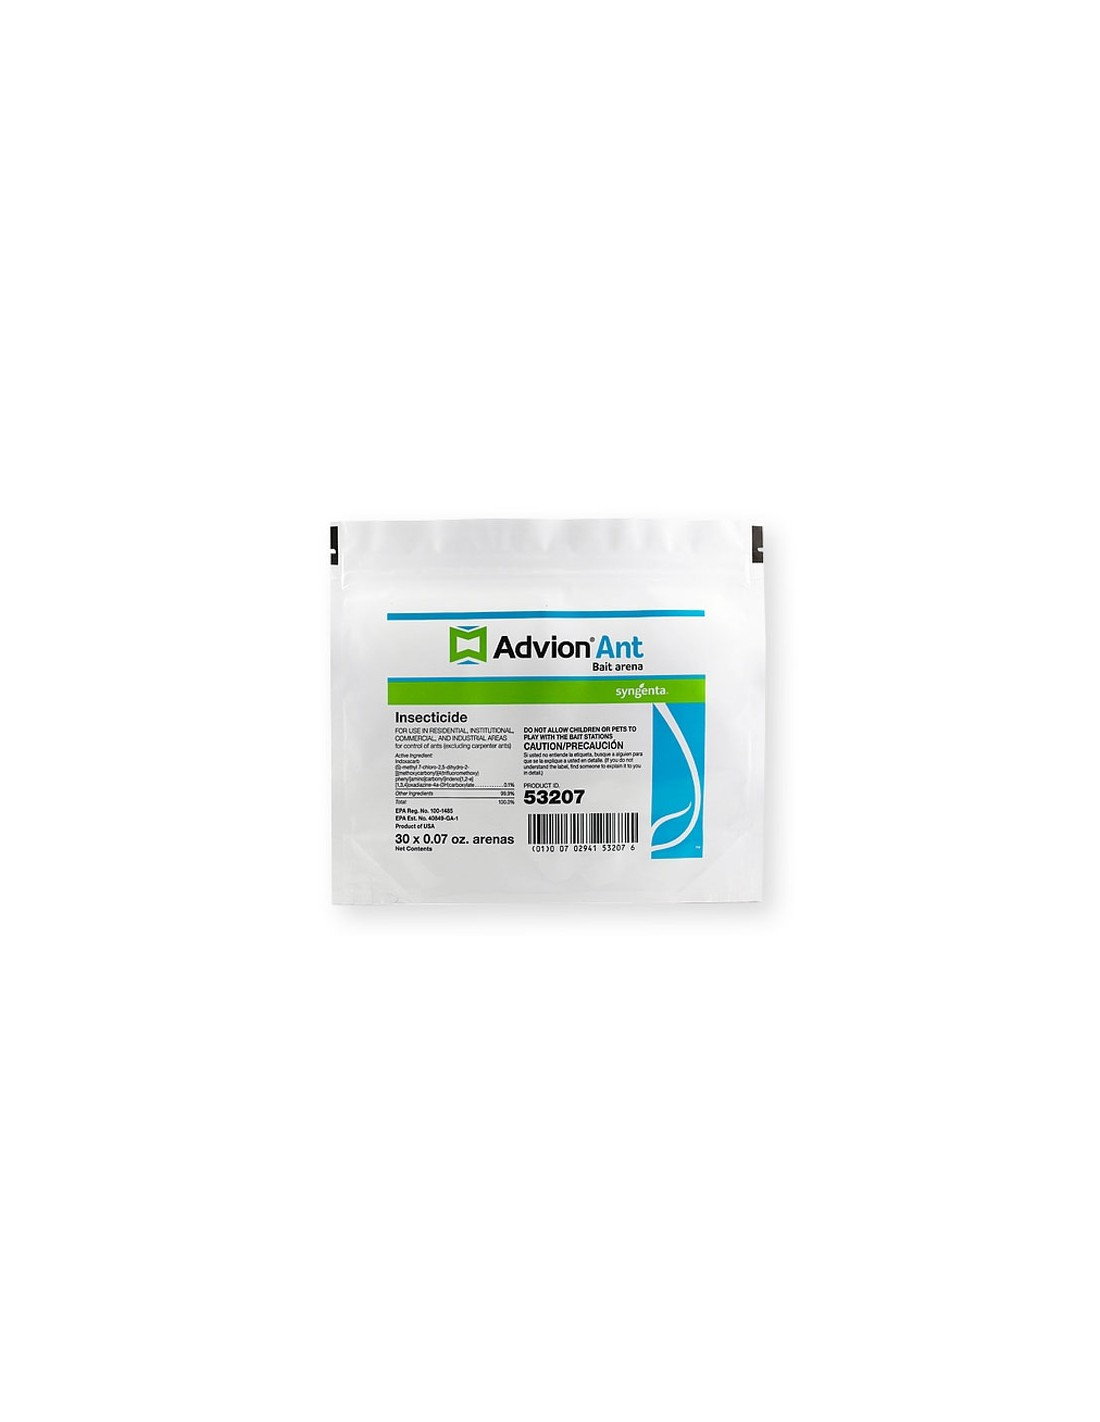 Advion Ant Bait Arena Questions & Answers